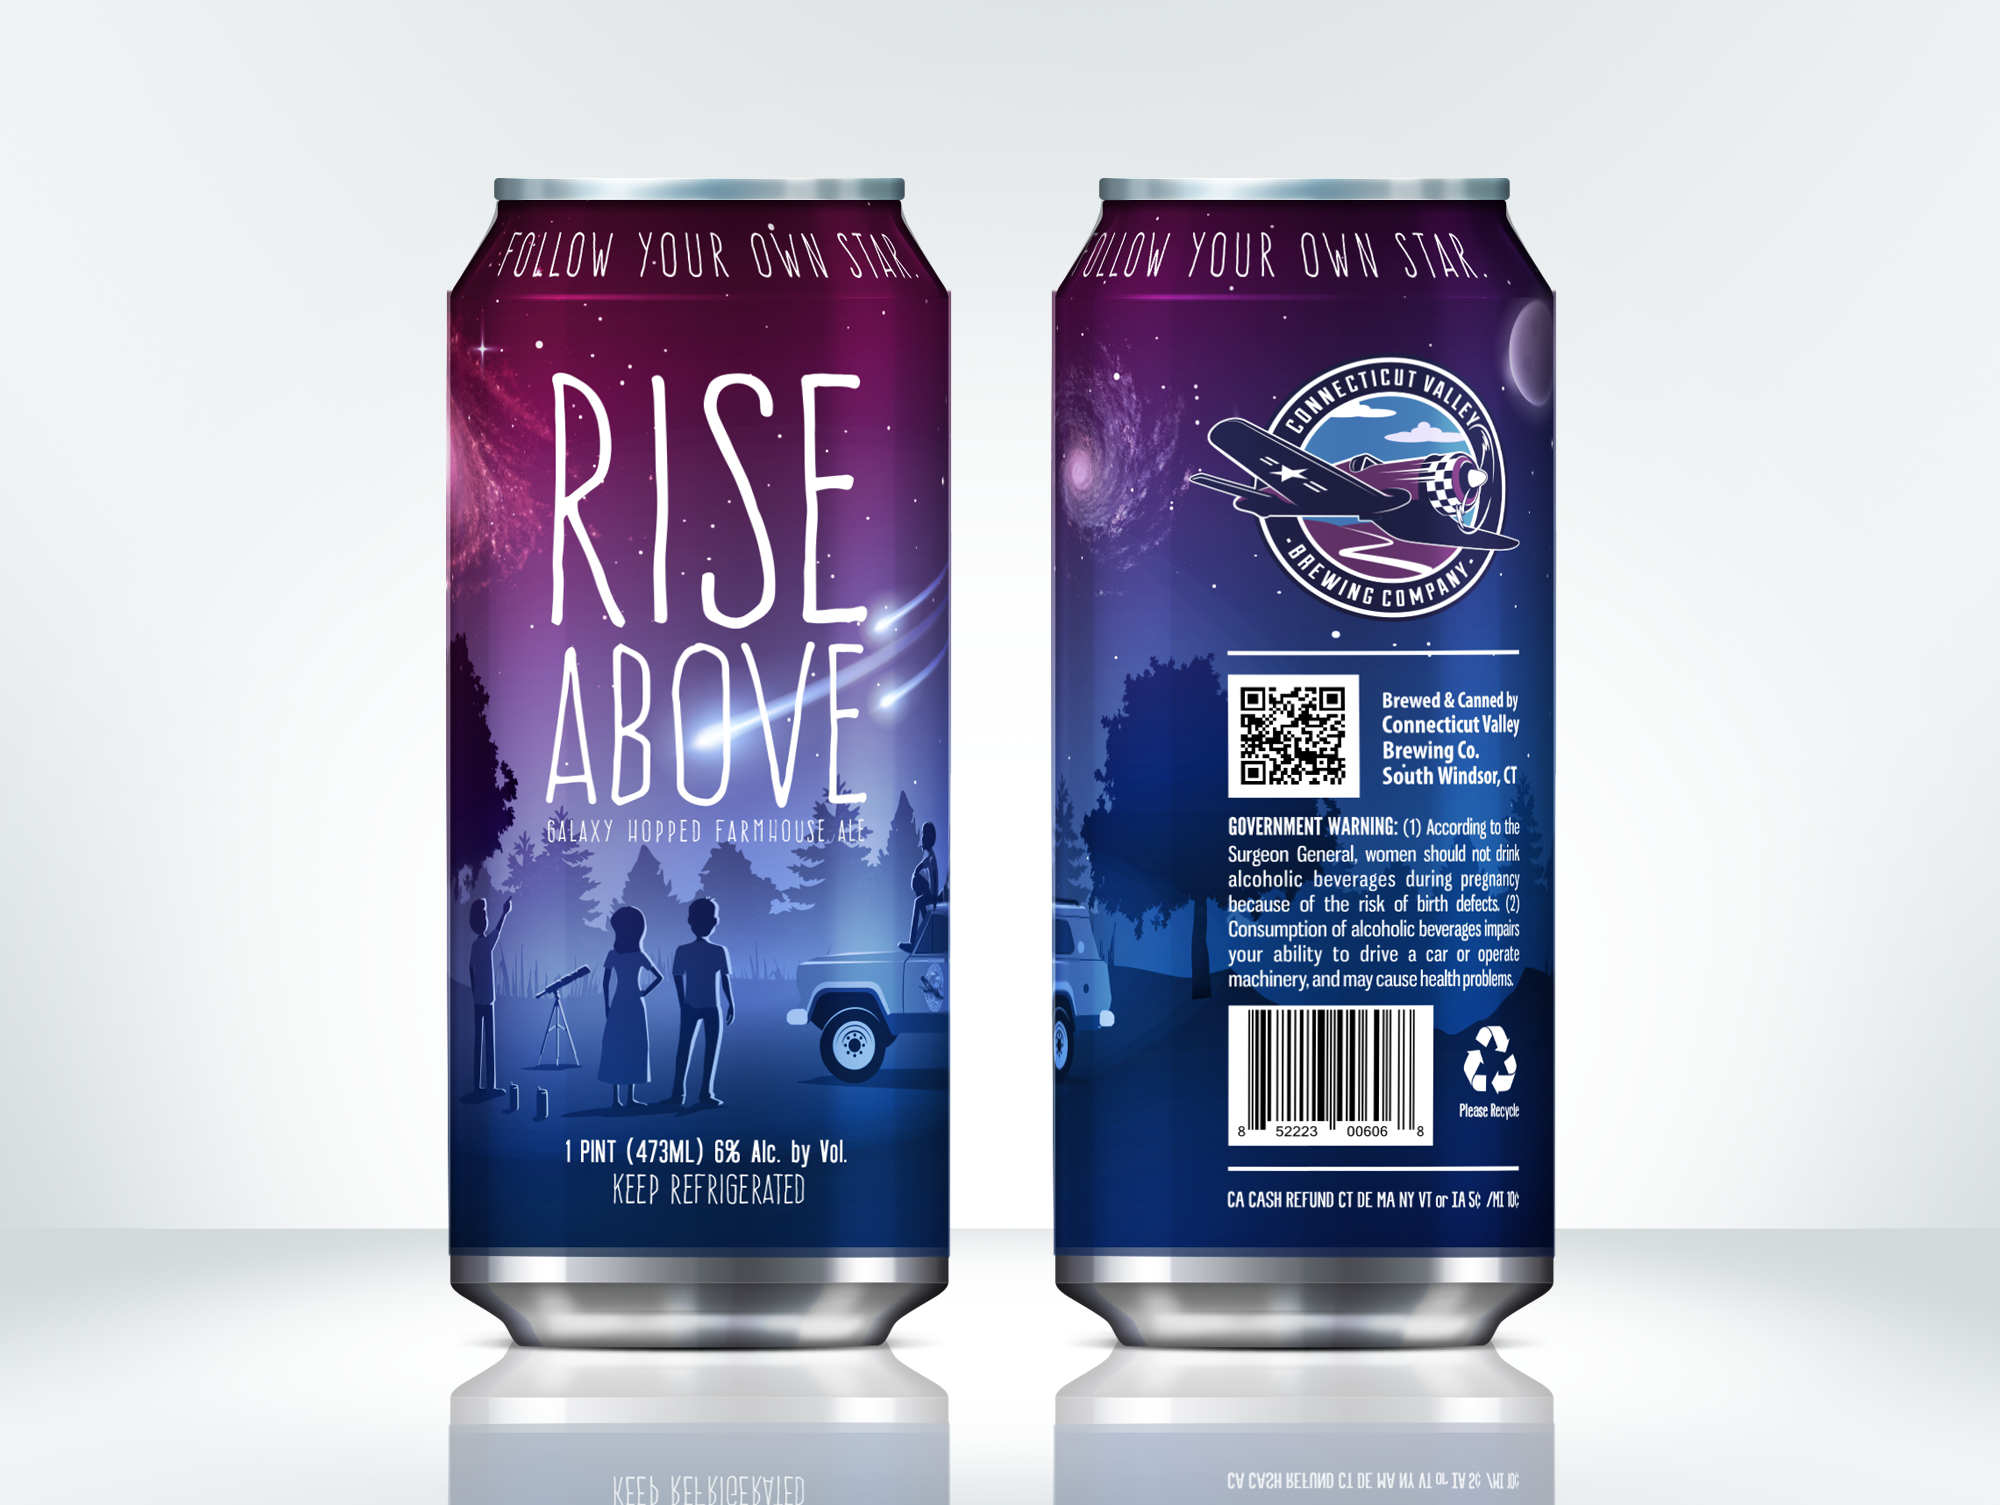 beer can design for the Connecticut Valley Brewing Company